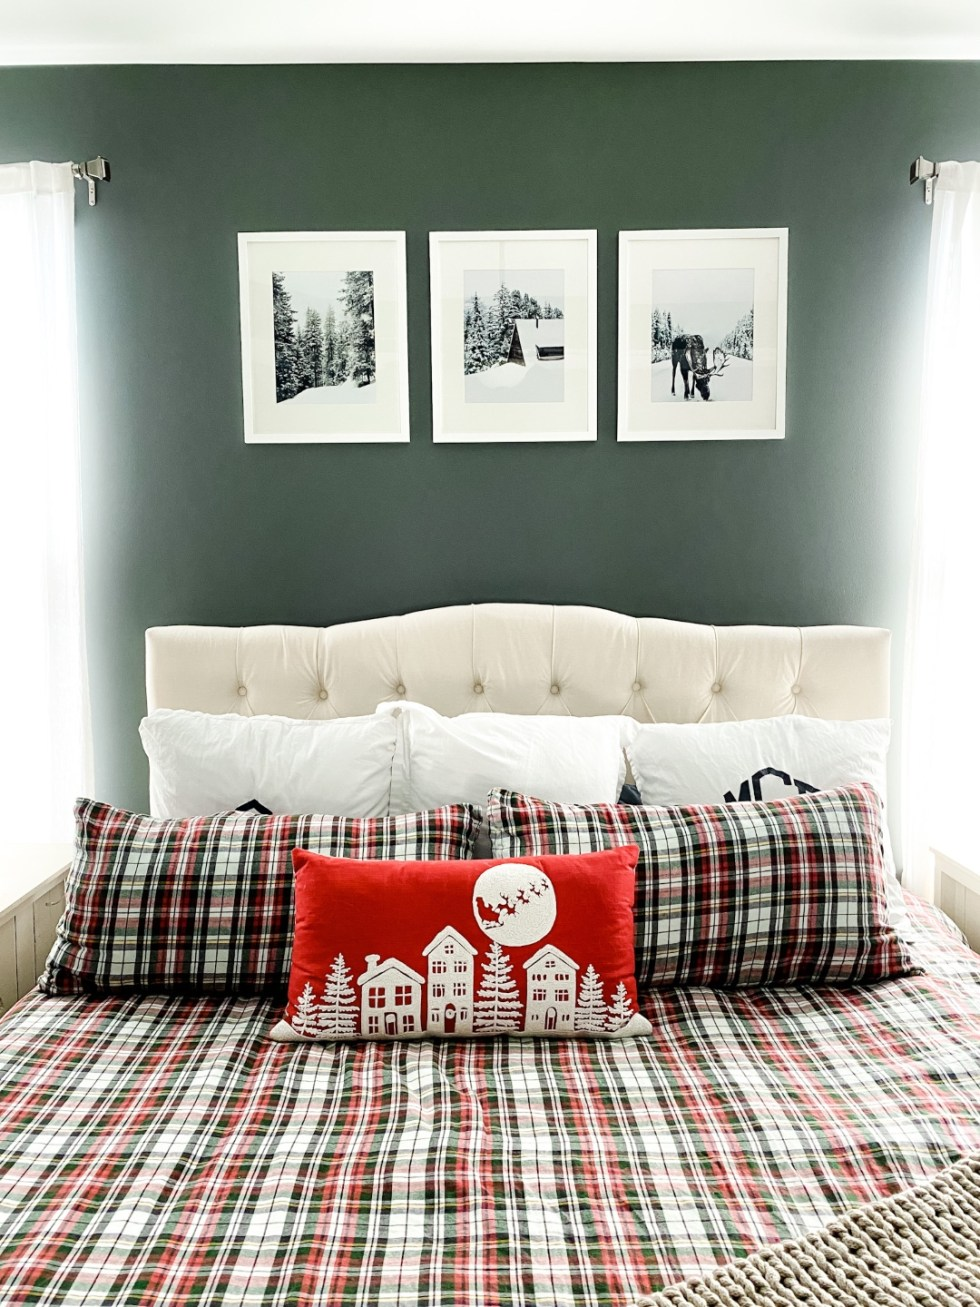 Home Decor: 7 Winter Art Prints for your Gallery Wall - I'm Fixin' To - @imfixintoblog |Winter Art Prints by popular NC life and style blog, I'm Fixin' To: image of three winter art prints hanging above a bed with red, white, and green plaid bedding and a white tuft headboard.